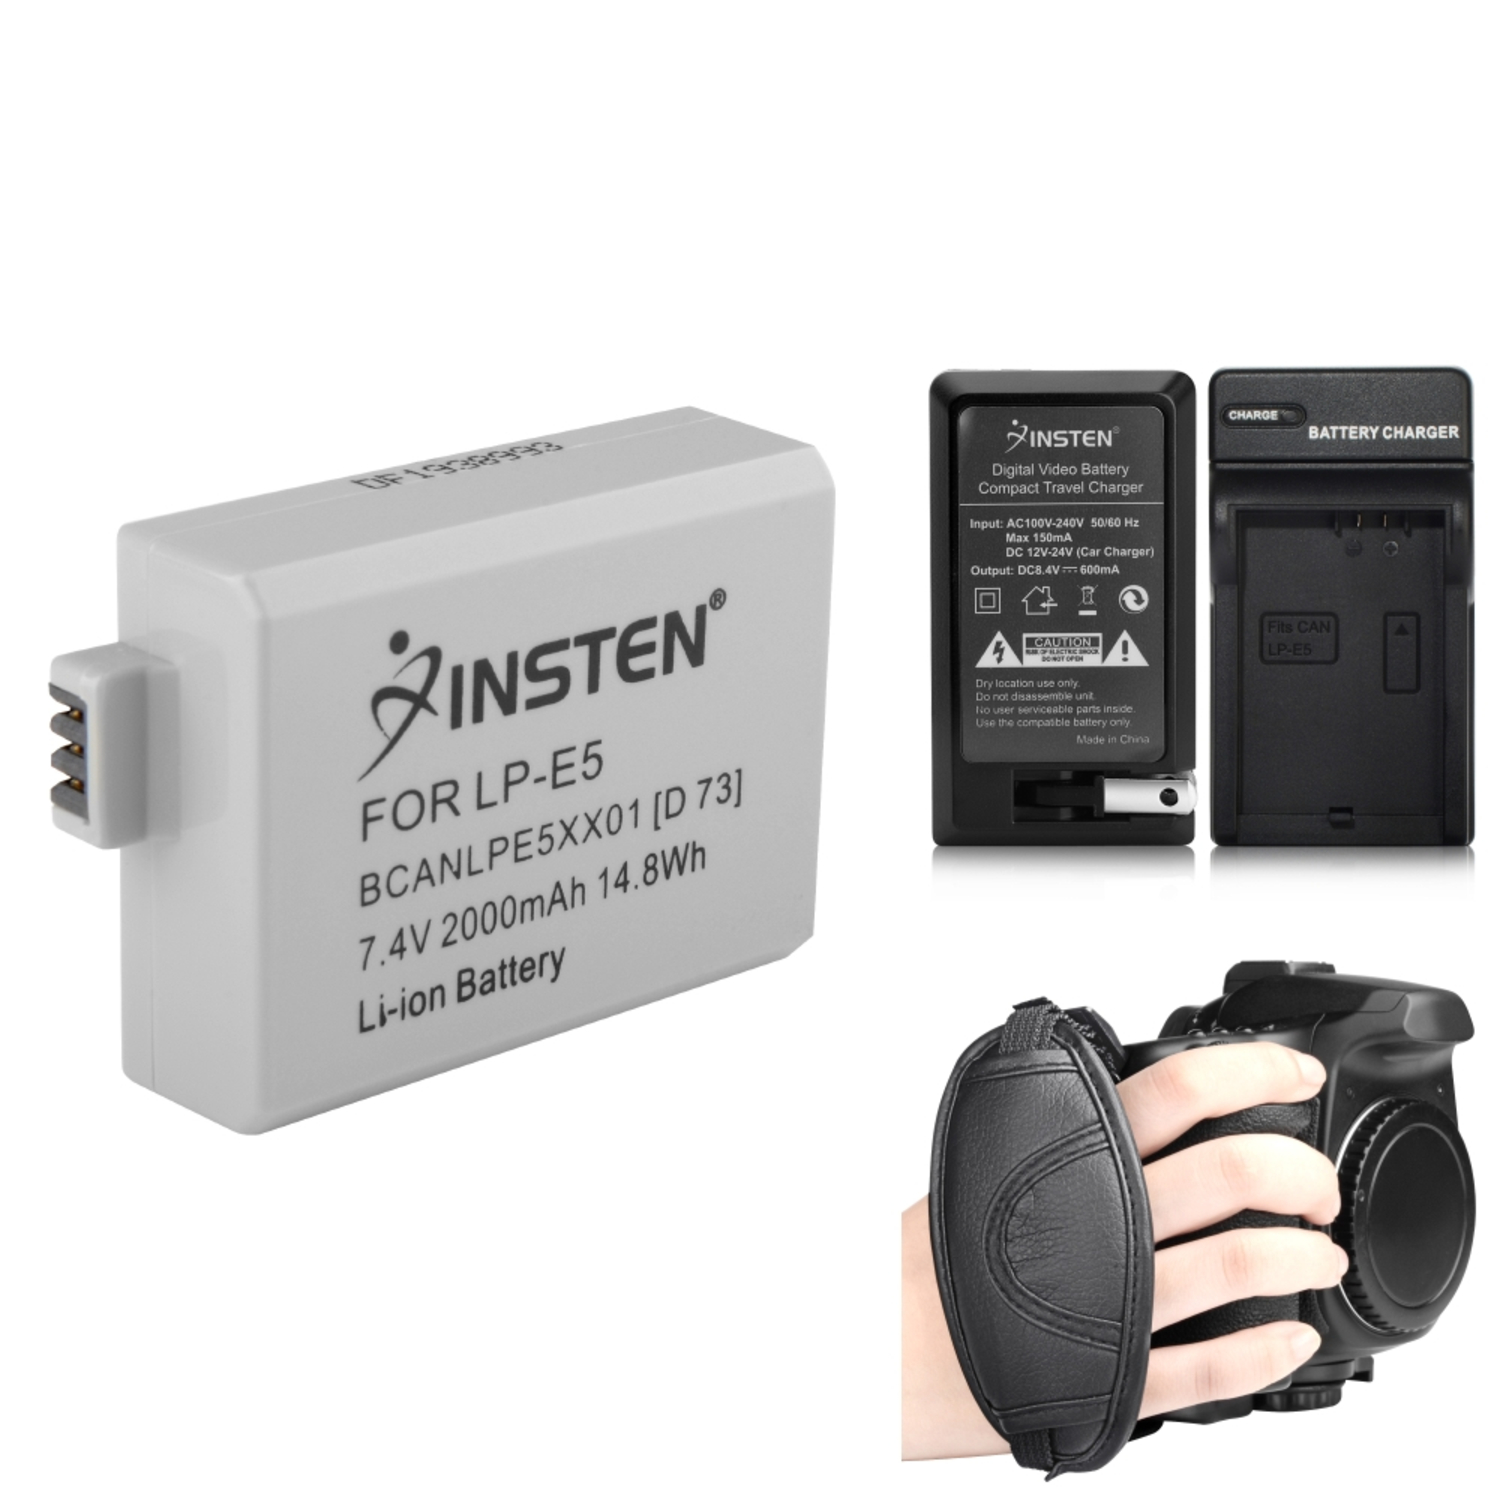 Insten 2x Battery+Charger+Strap LP-E5 For Canon Rebel XSi XS T1i EOS 1000D 450D 500D